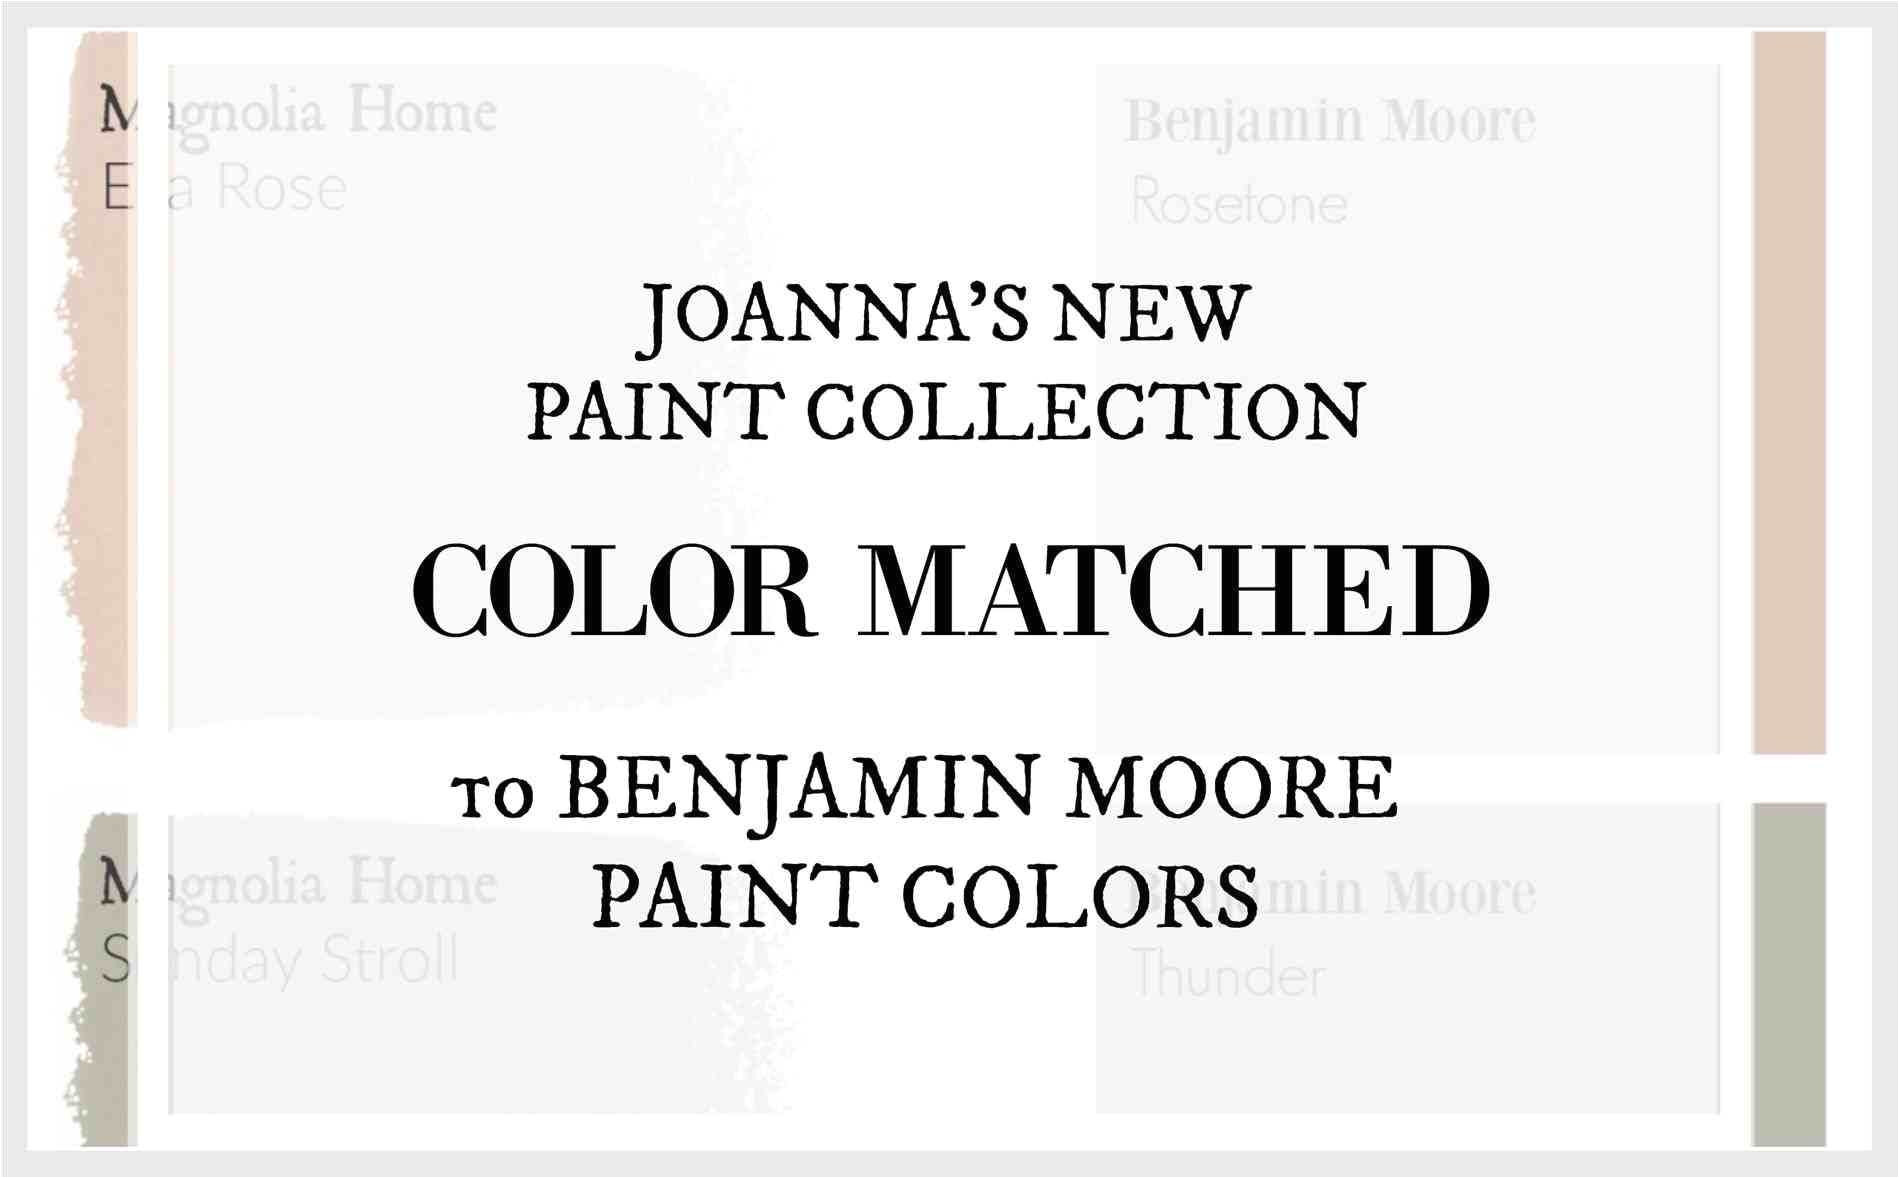 Joanna Gaines Paint Colors Matched to Benjamin Moore 10 Inspiring Joanna Gaines Paint Colors Matched to Benjamin Moore